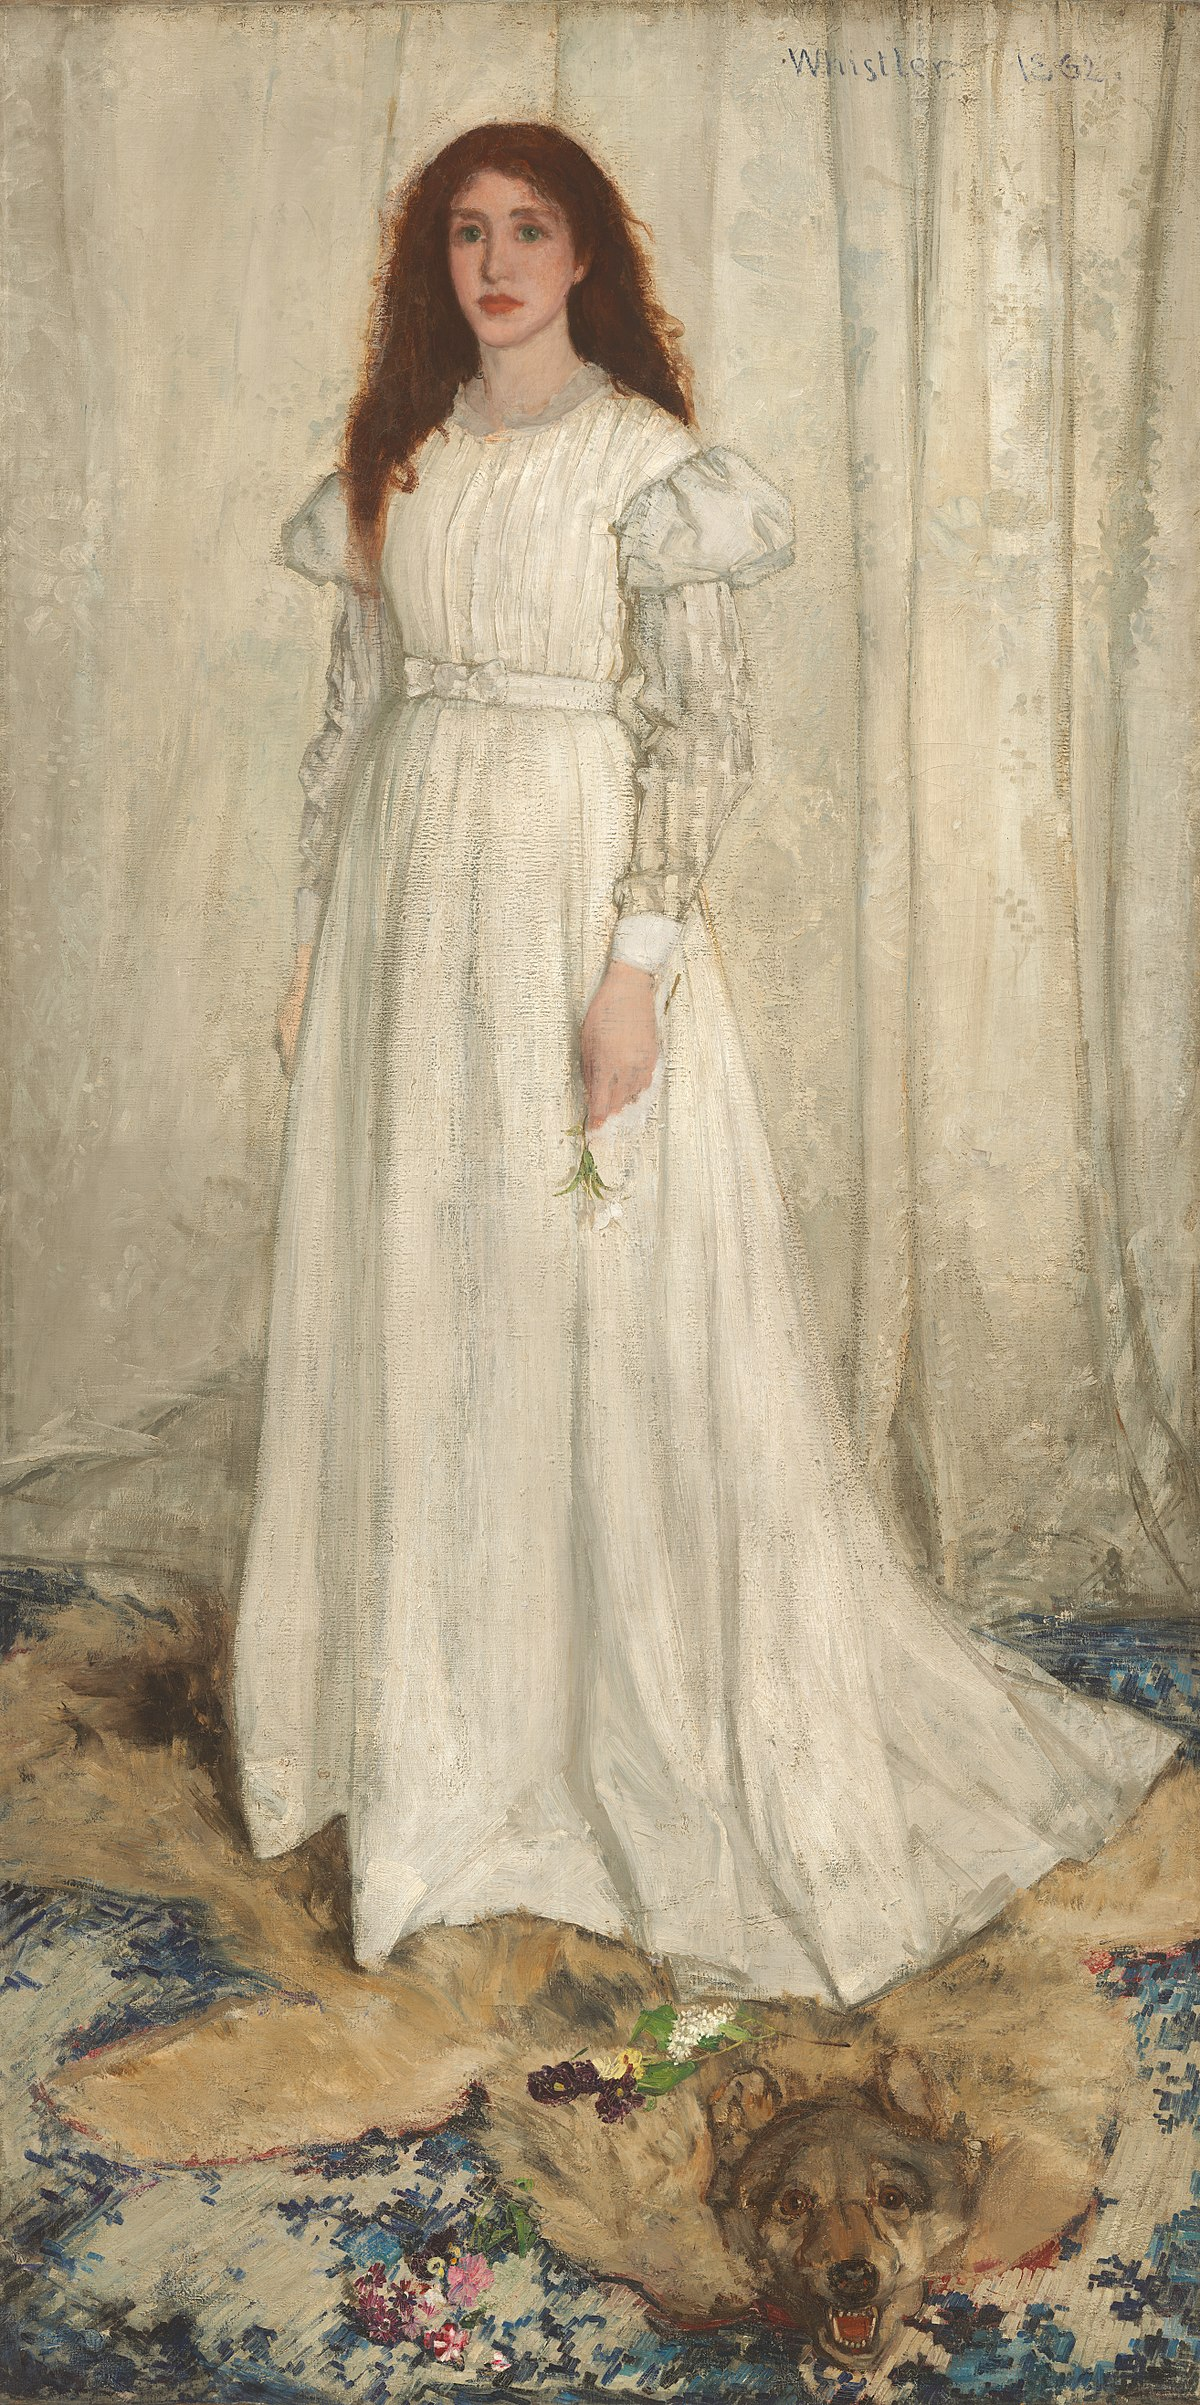 Woman in white dress images